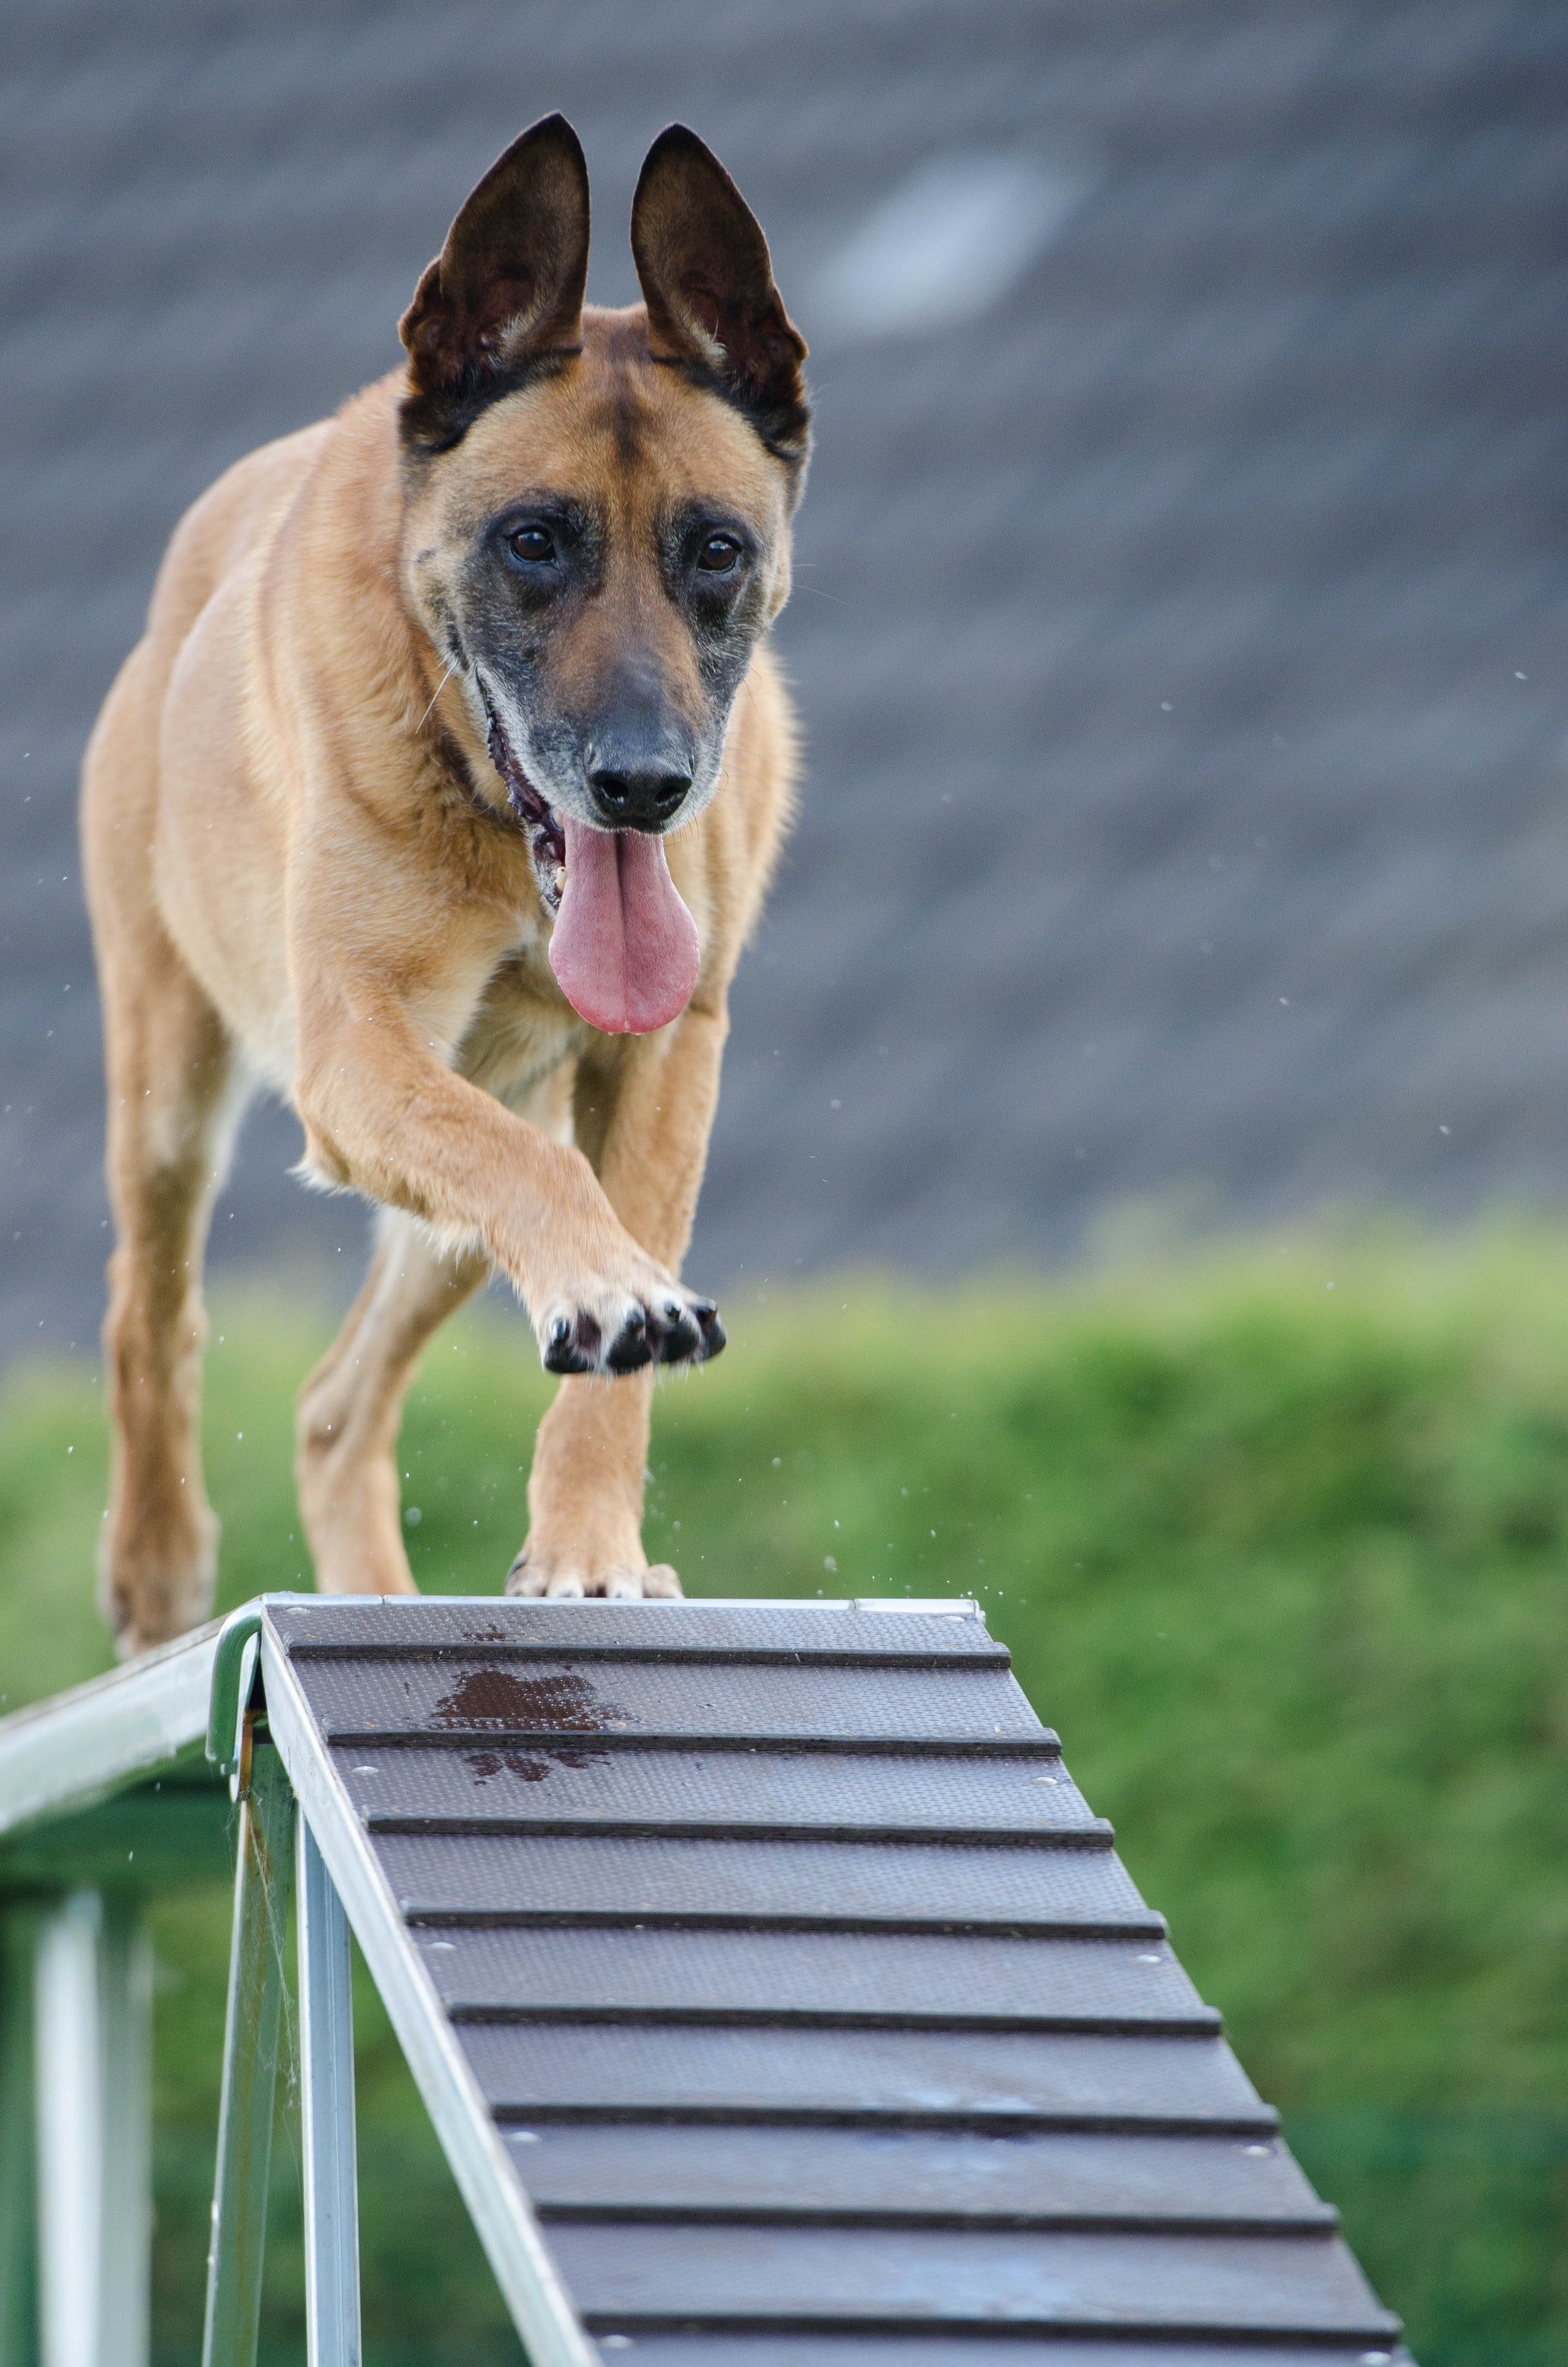 Dog climbing on a ramp learning how to be agile.